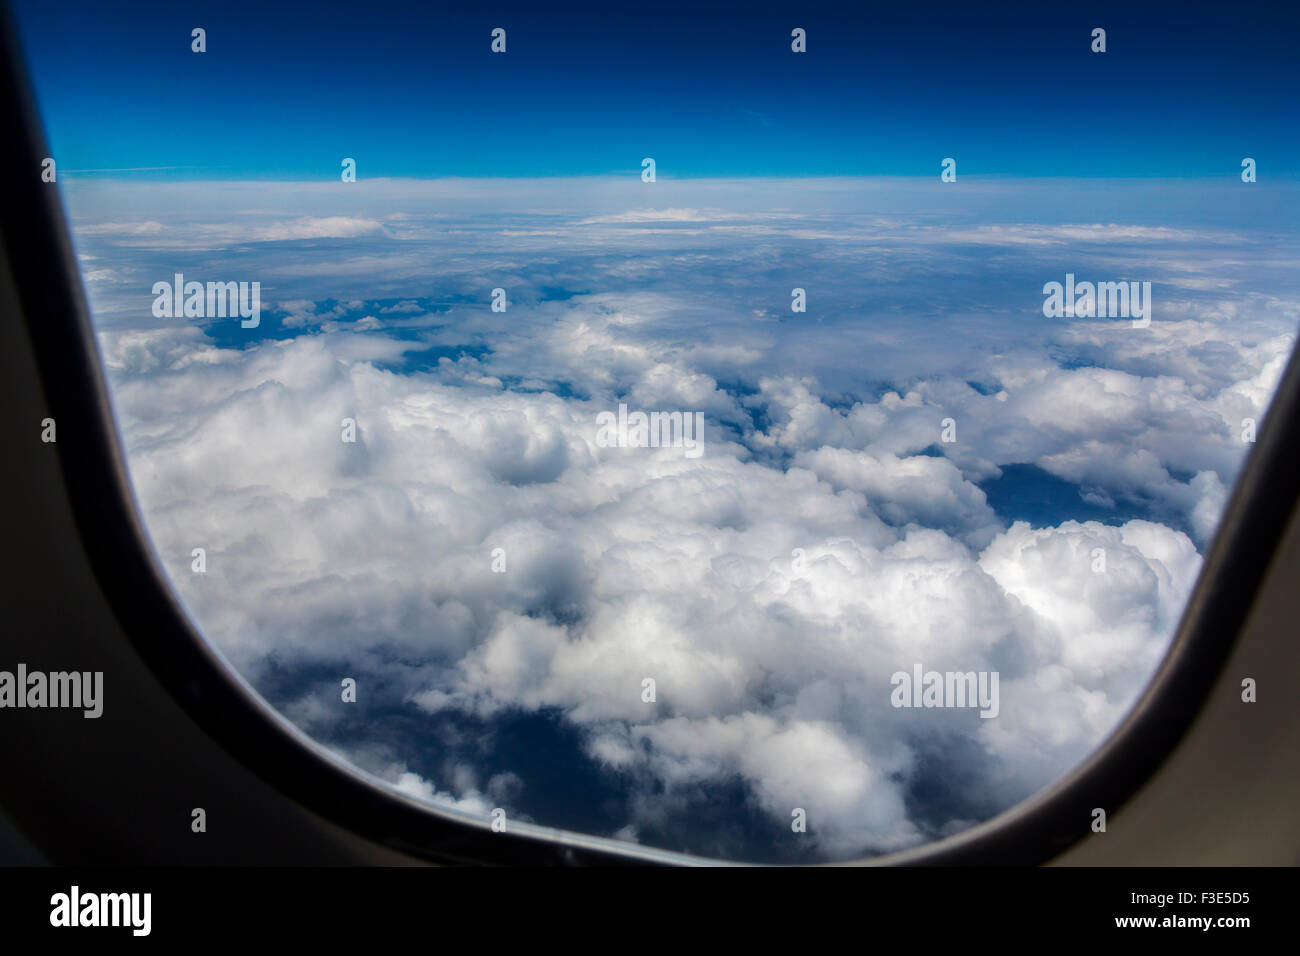 Clouds blue sky window airliner - Stock Image